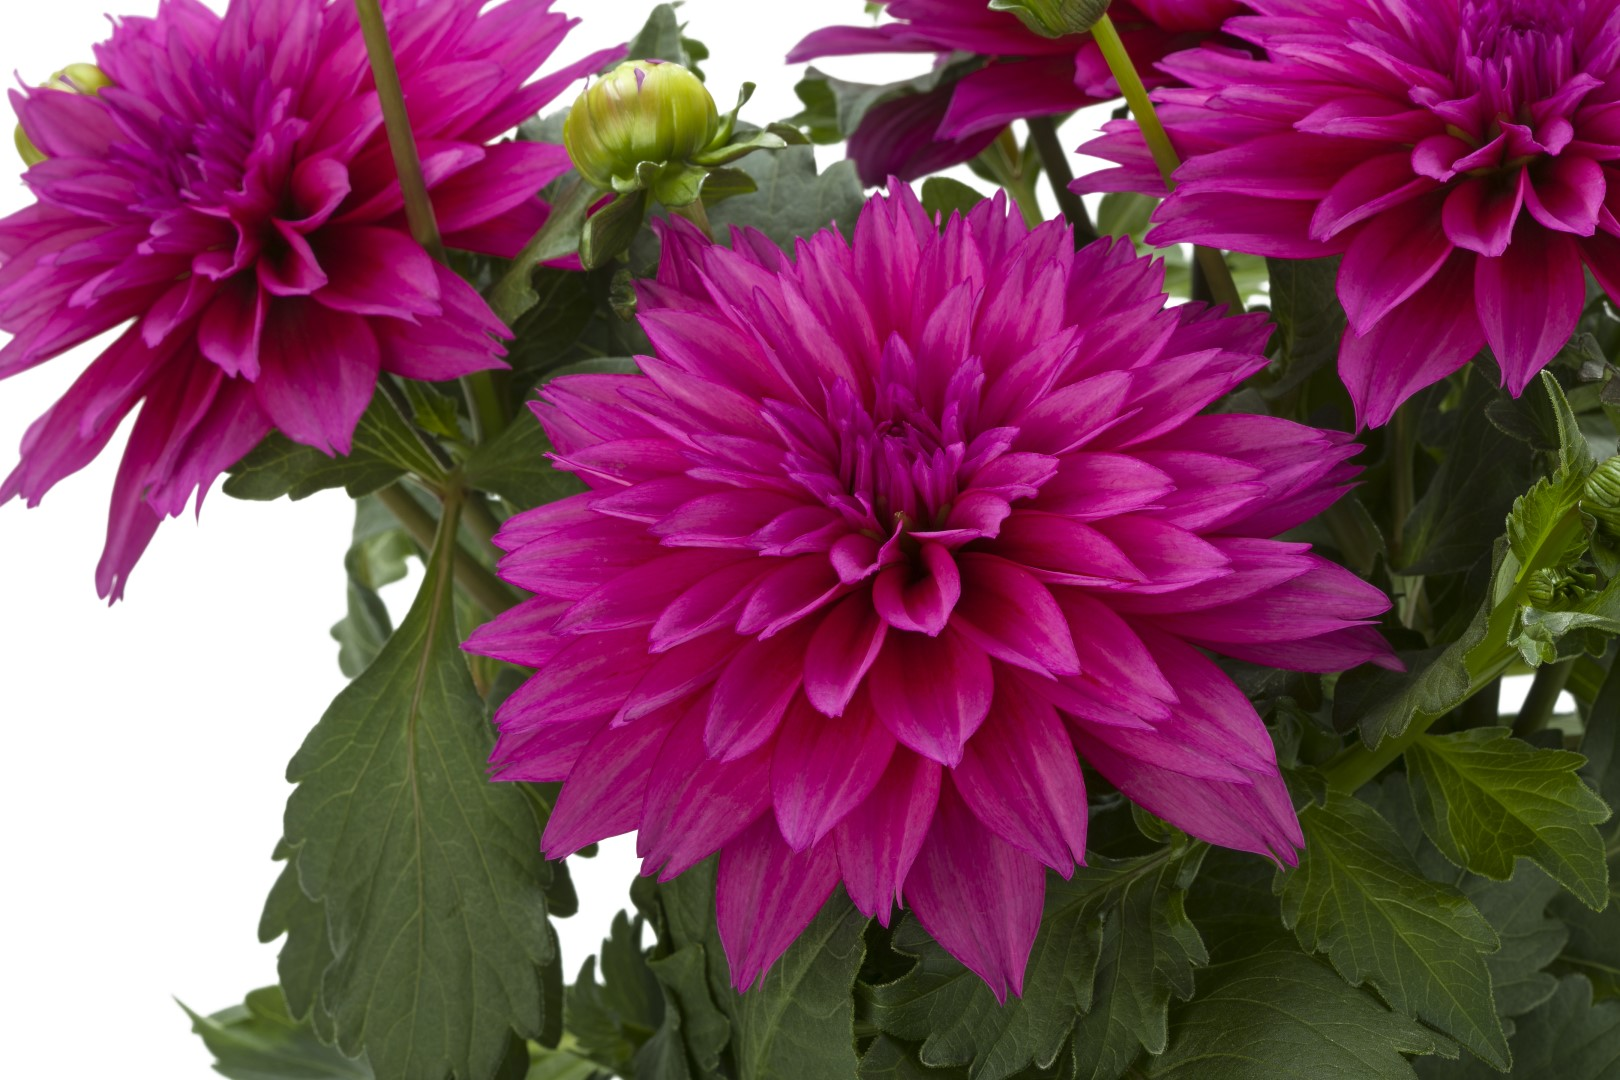 Dahlia - Giant Flowered